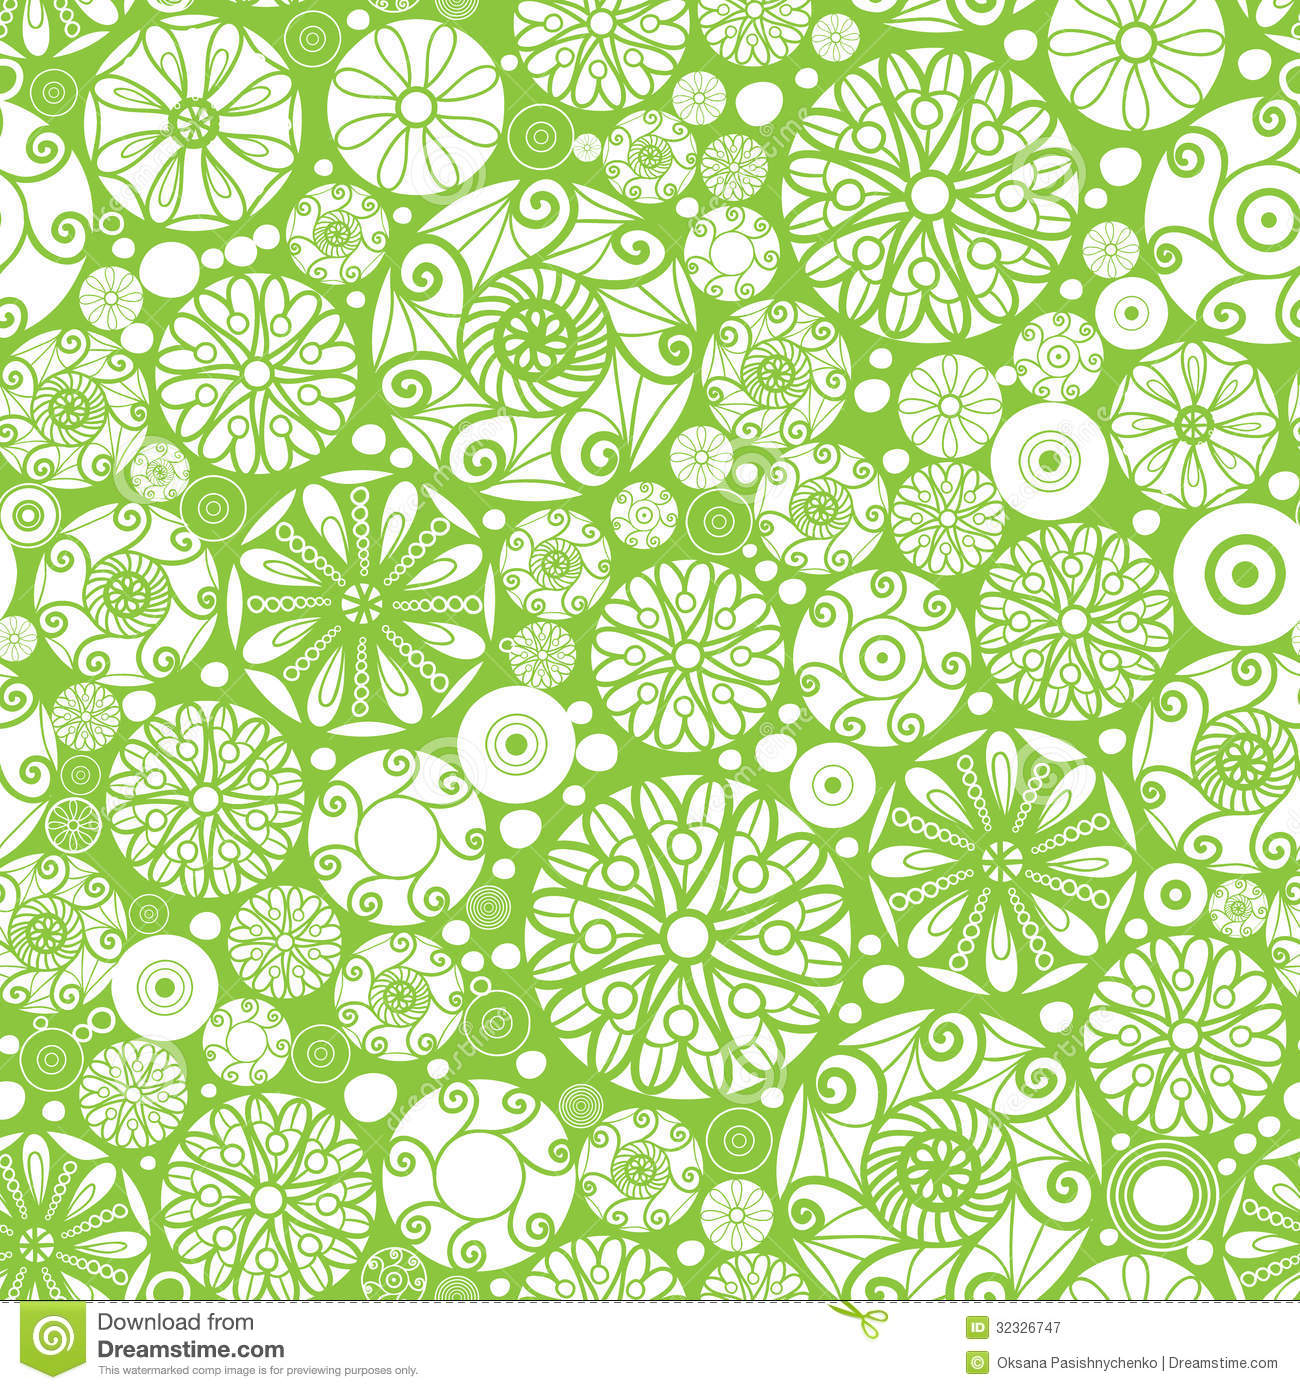 green pattern patterns 1900x1200 - photo #34